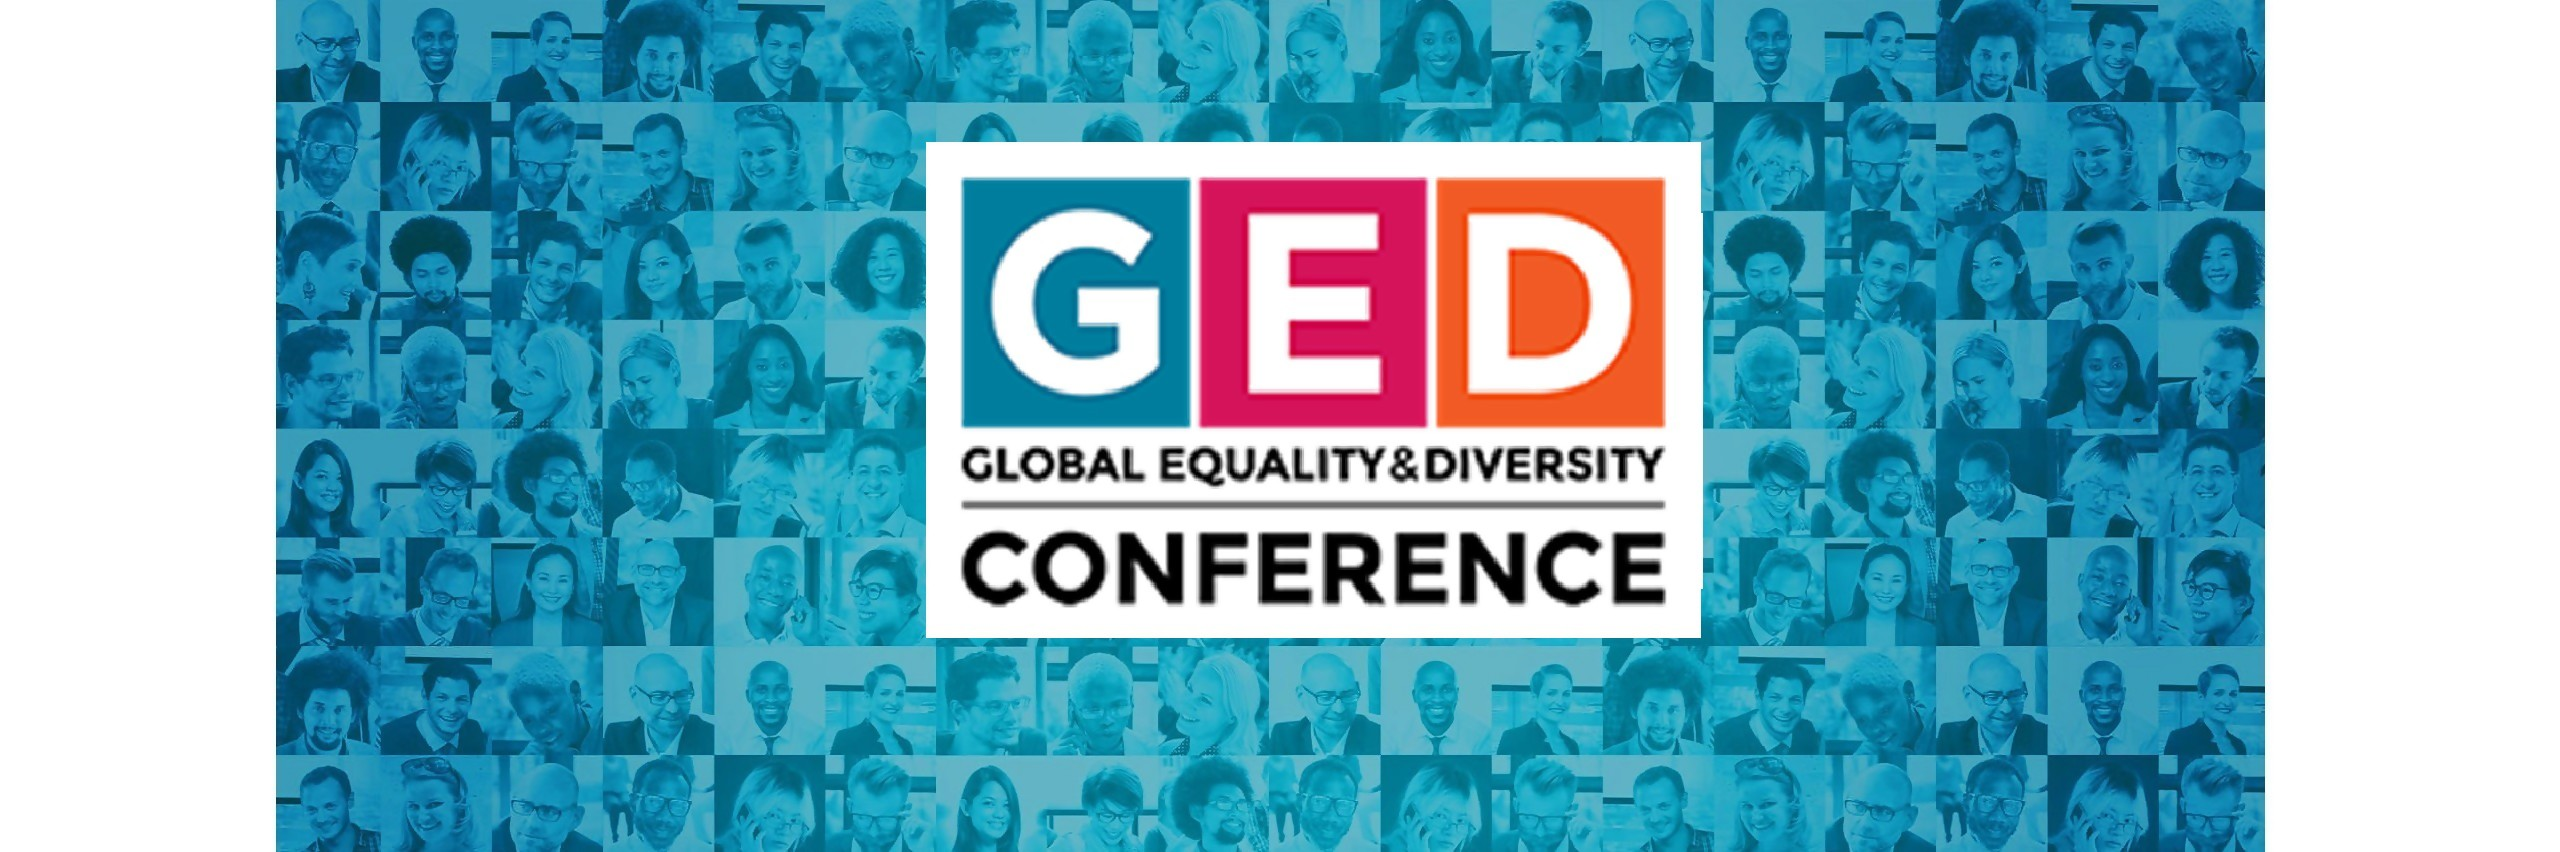 GED Conference London 2017